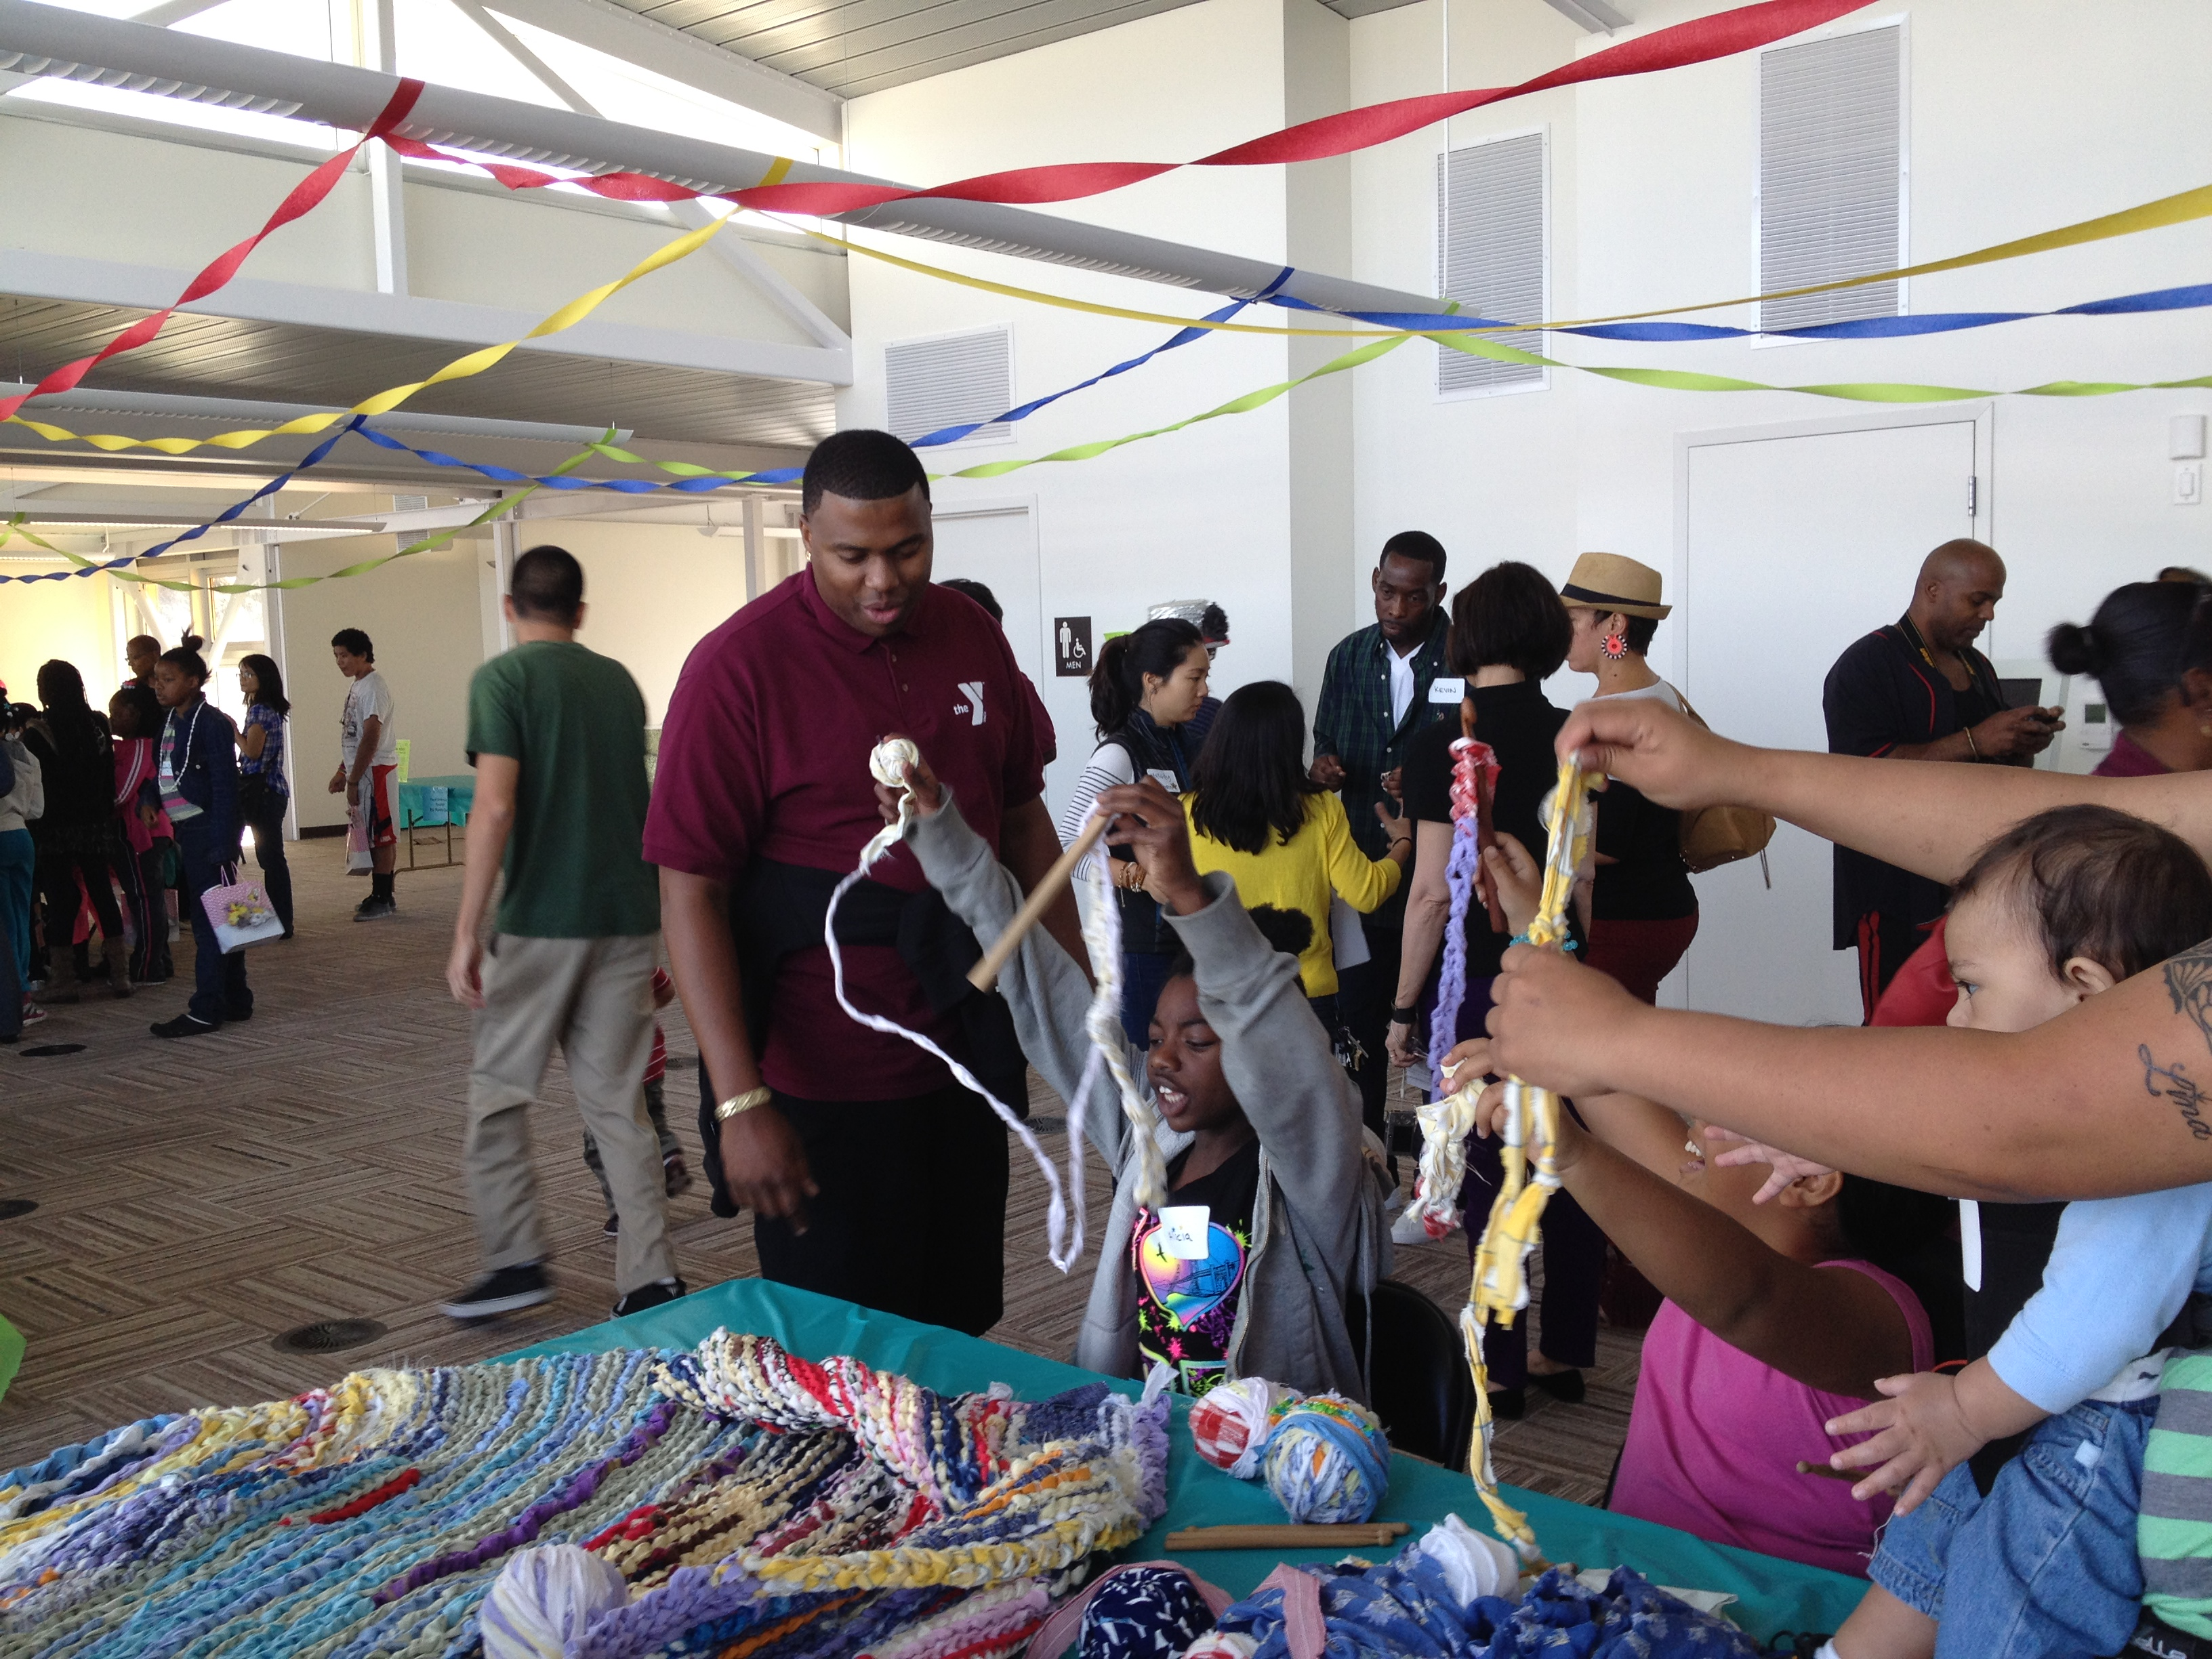 Ramekon O'Arwisters, Crochet Jam, Hunter's Points Community Center, San Francisco, 2014